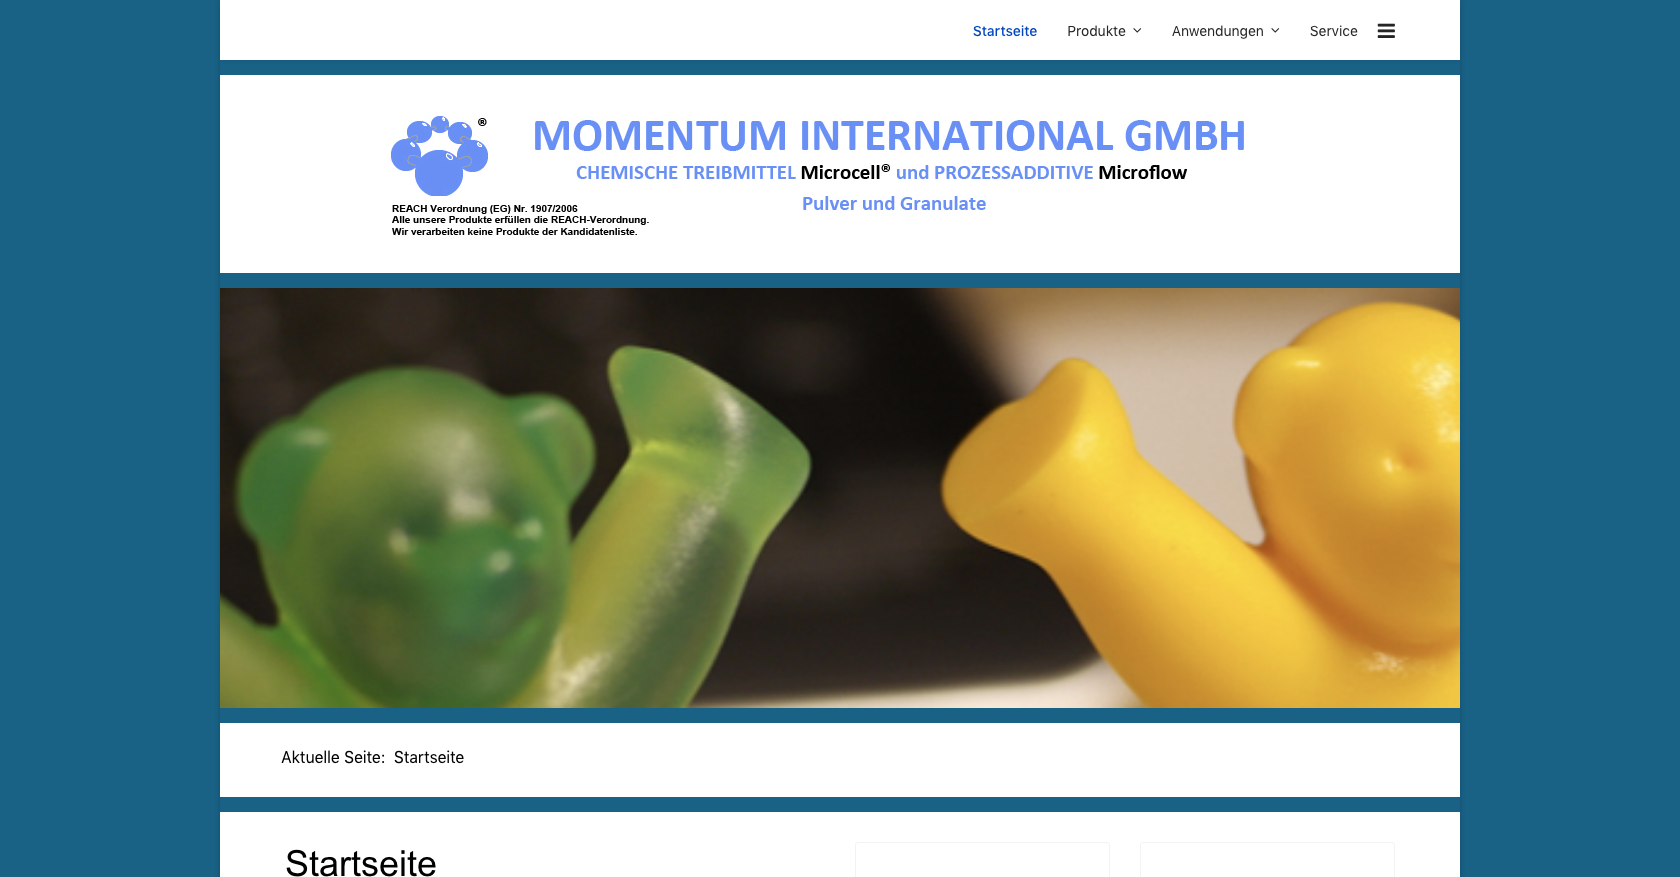 Momentum International GmbH